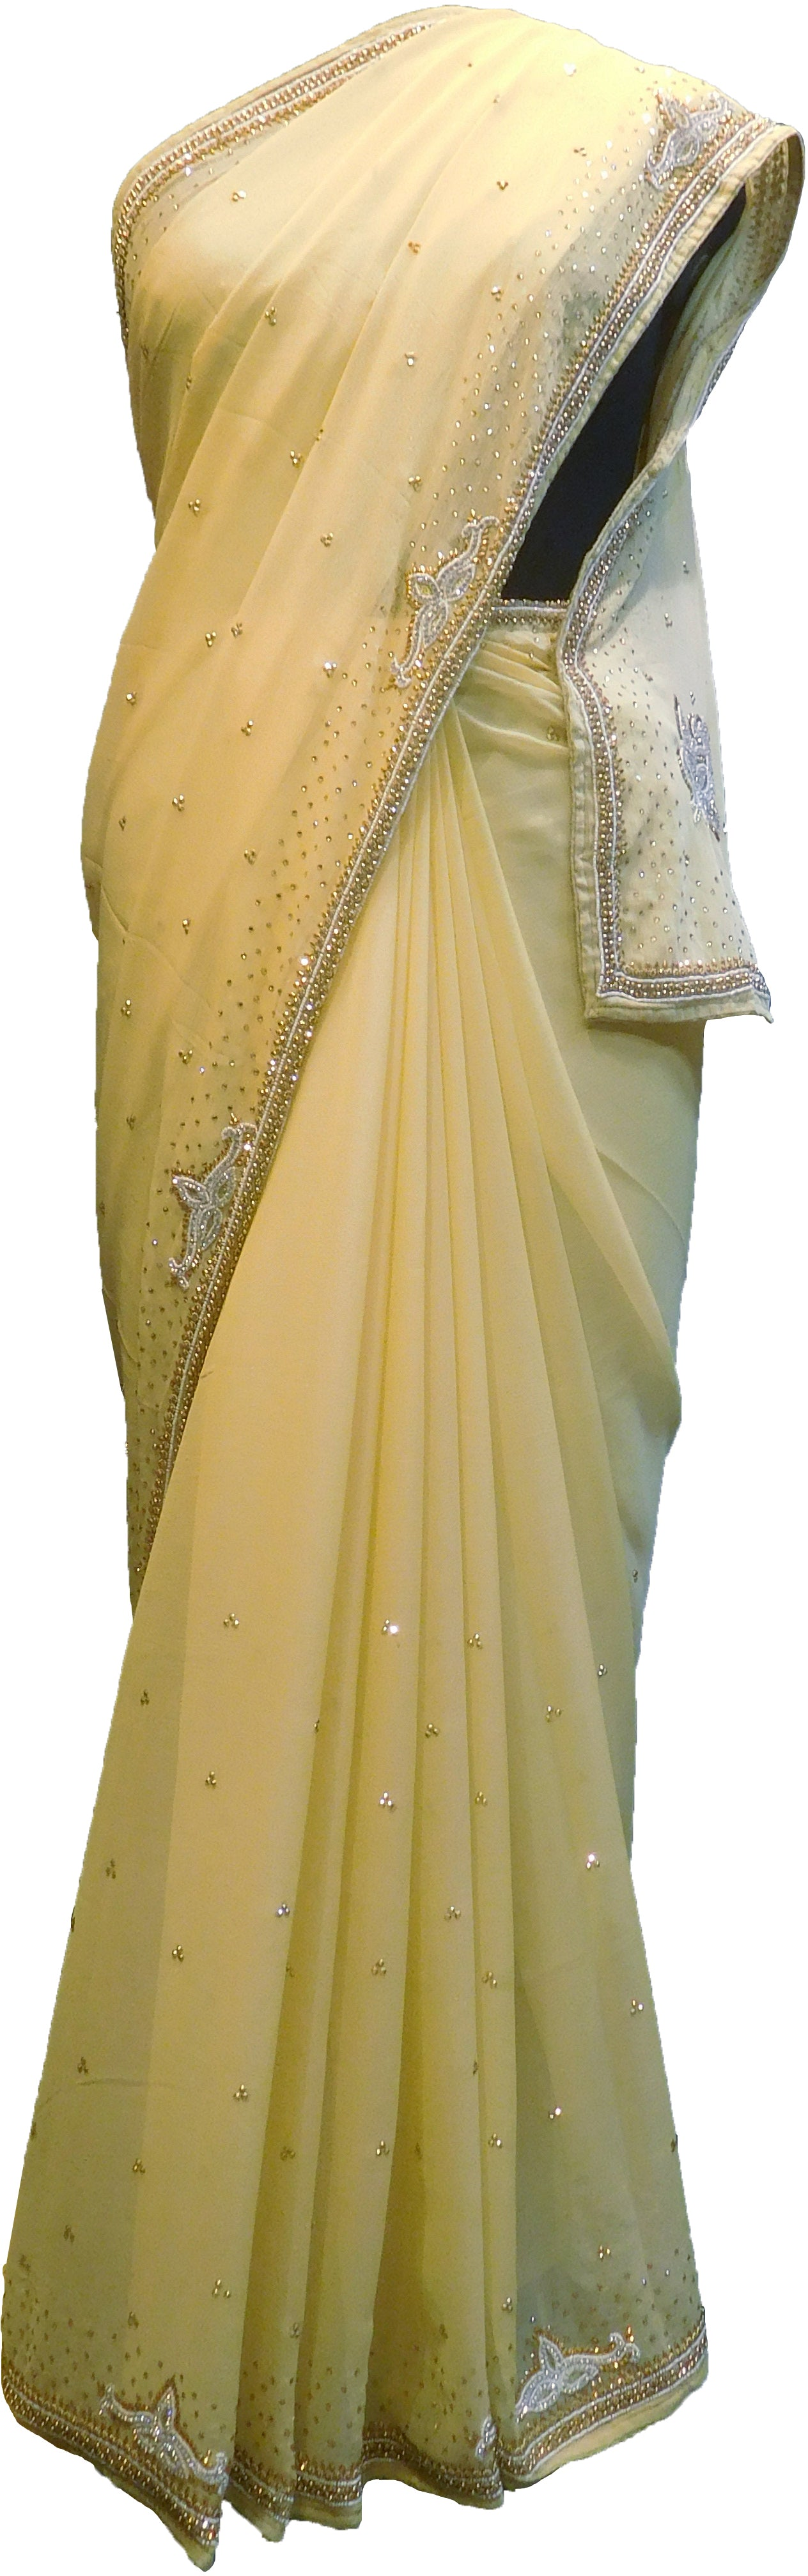 SMSAREE Beige Designer Wedding Partywear Georgette Stone Thread Beads & Cutdana Hand Embroidery Work Bridal Saree Sari With Blouse Piece F281